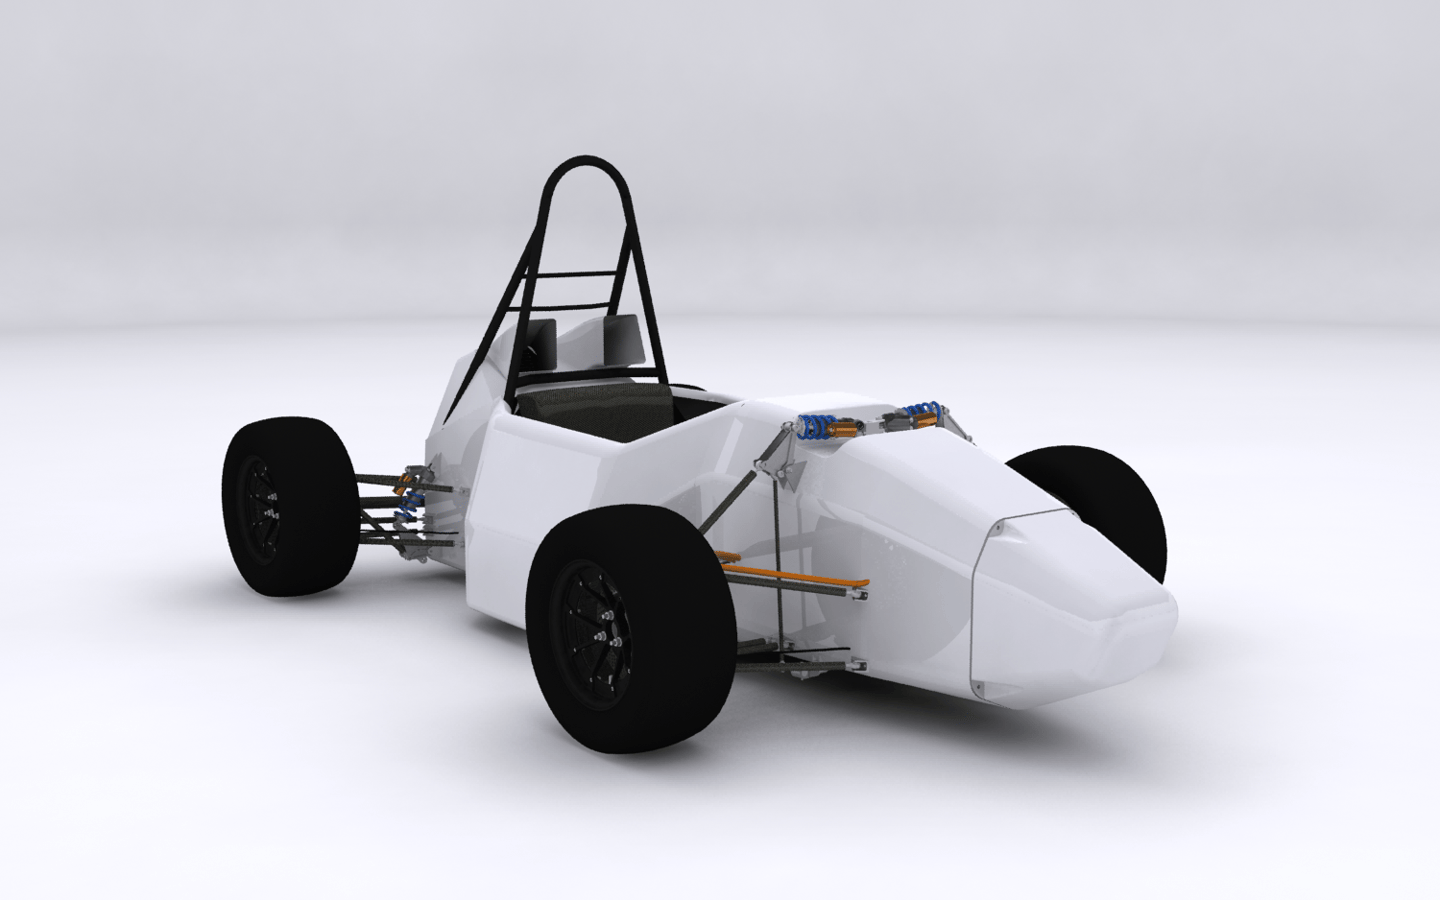 The DUT12 uses a prepreg carbon fiber-reinforced polymer monocoque